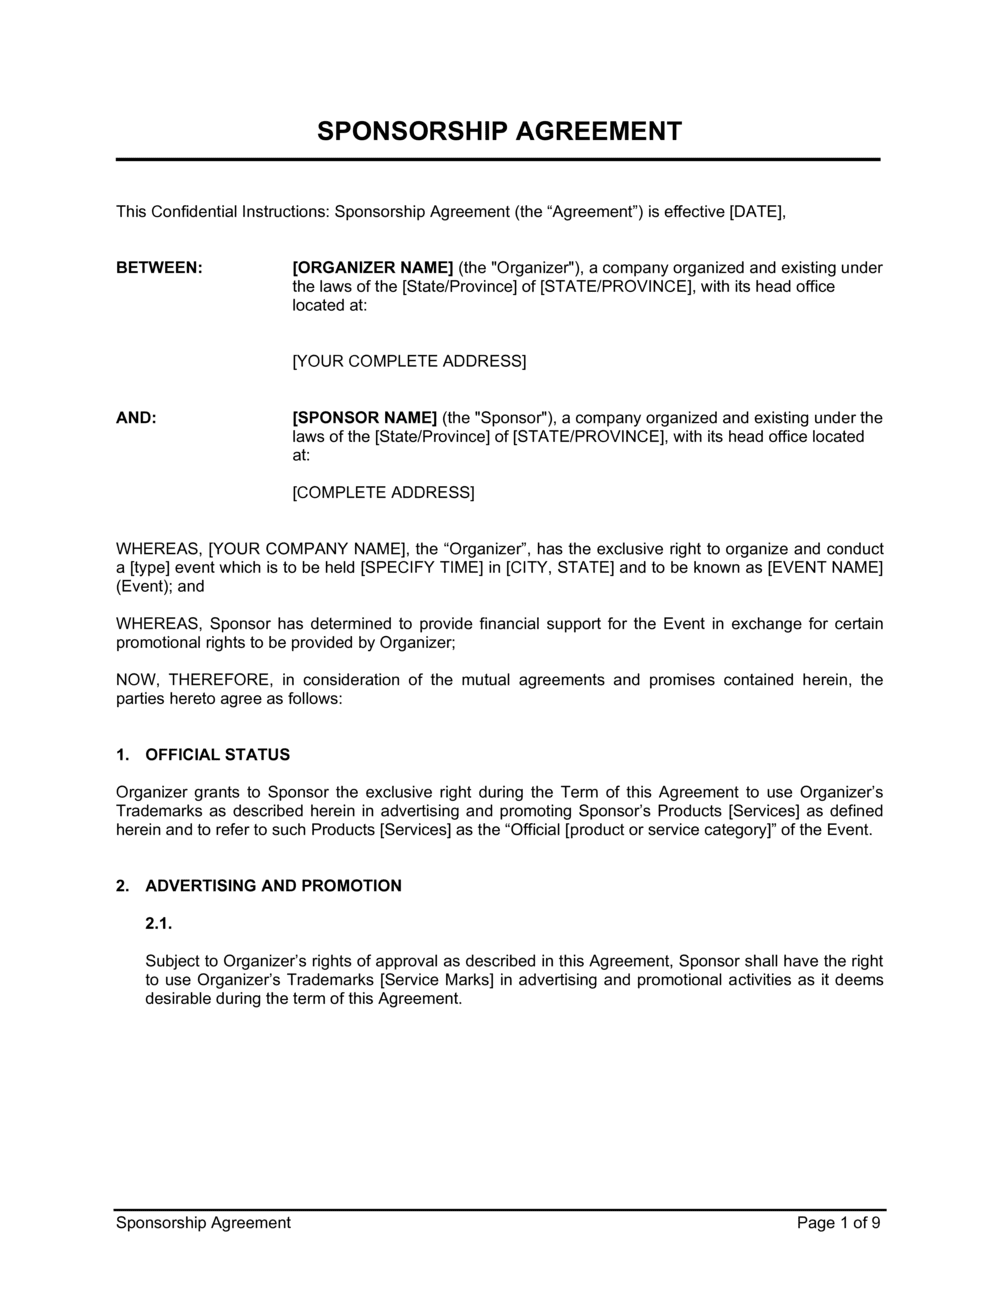 Business-in-a-Box's Sponsorship Agreement Template